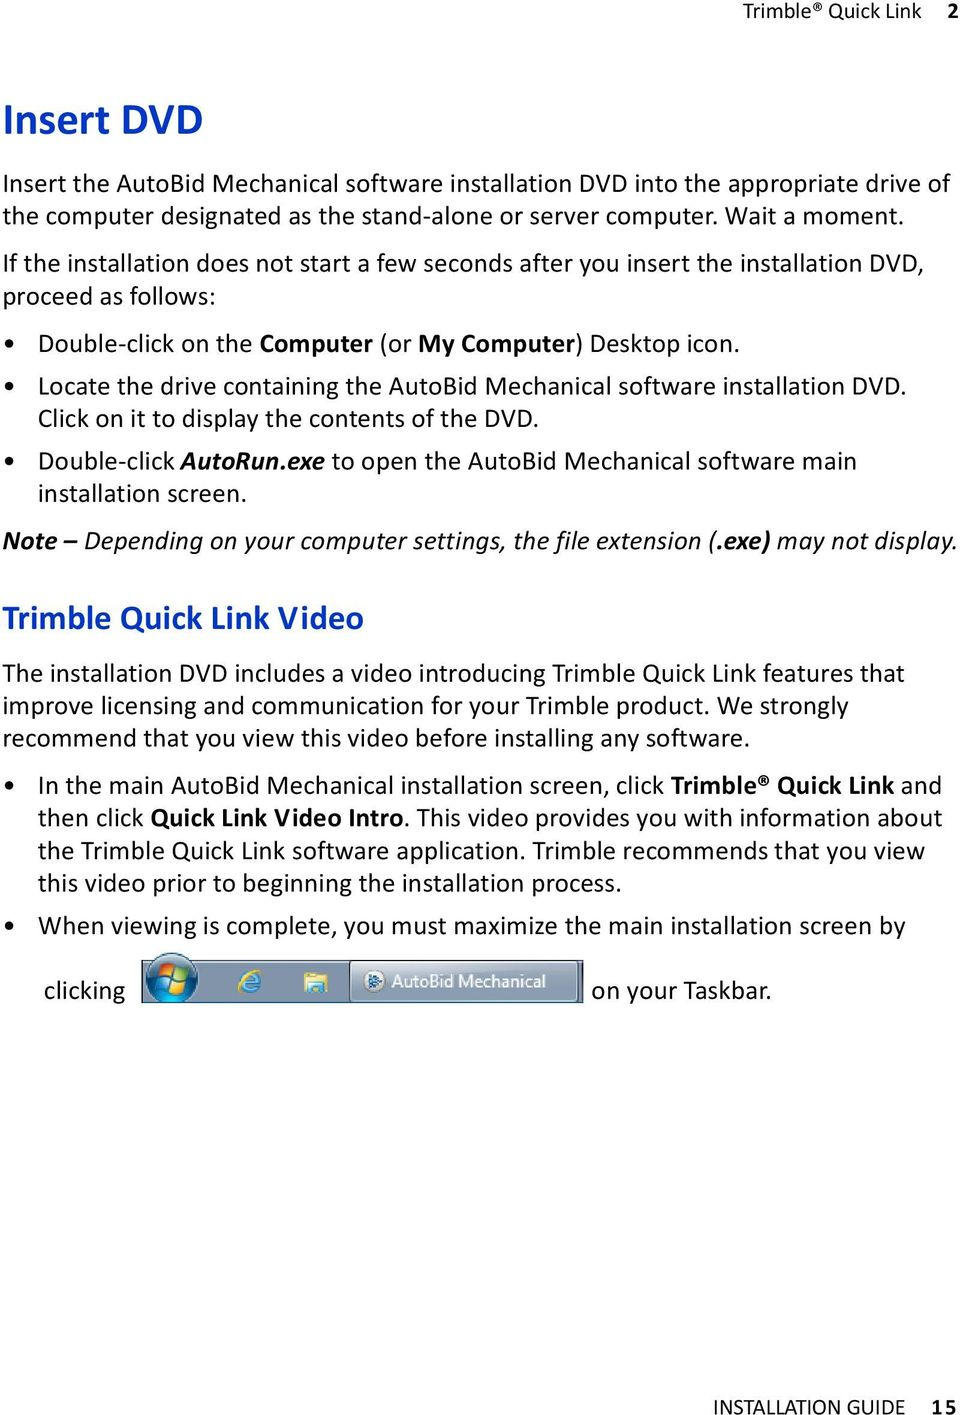 Locate the drive containing the AutoBid Mechanical software installation DVD. Click on it to display the contents of the DVD. Double-click AutoRun.